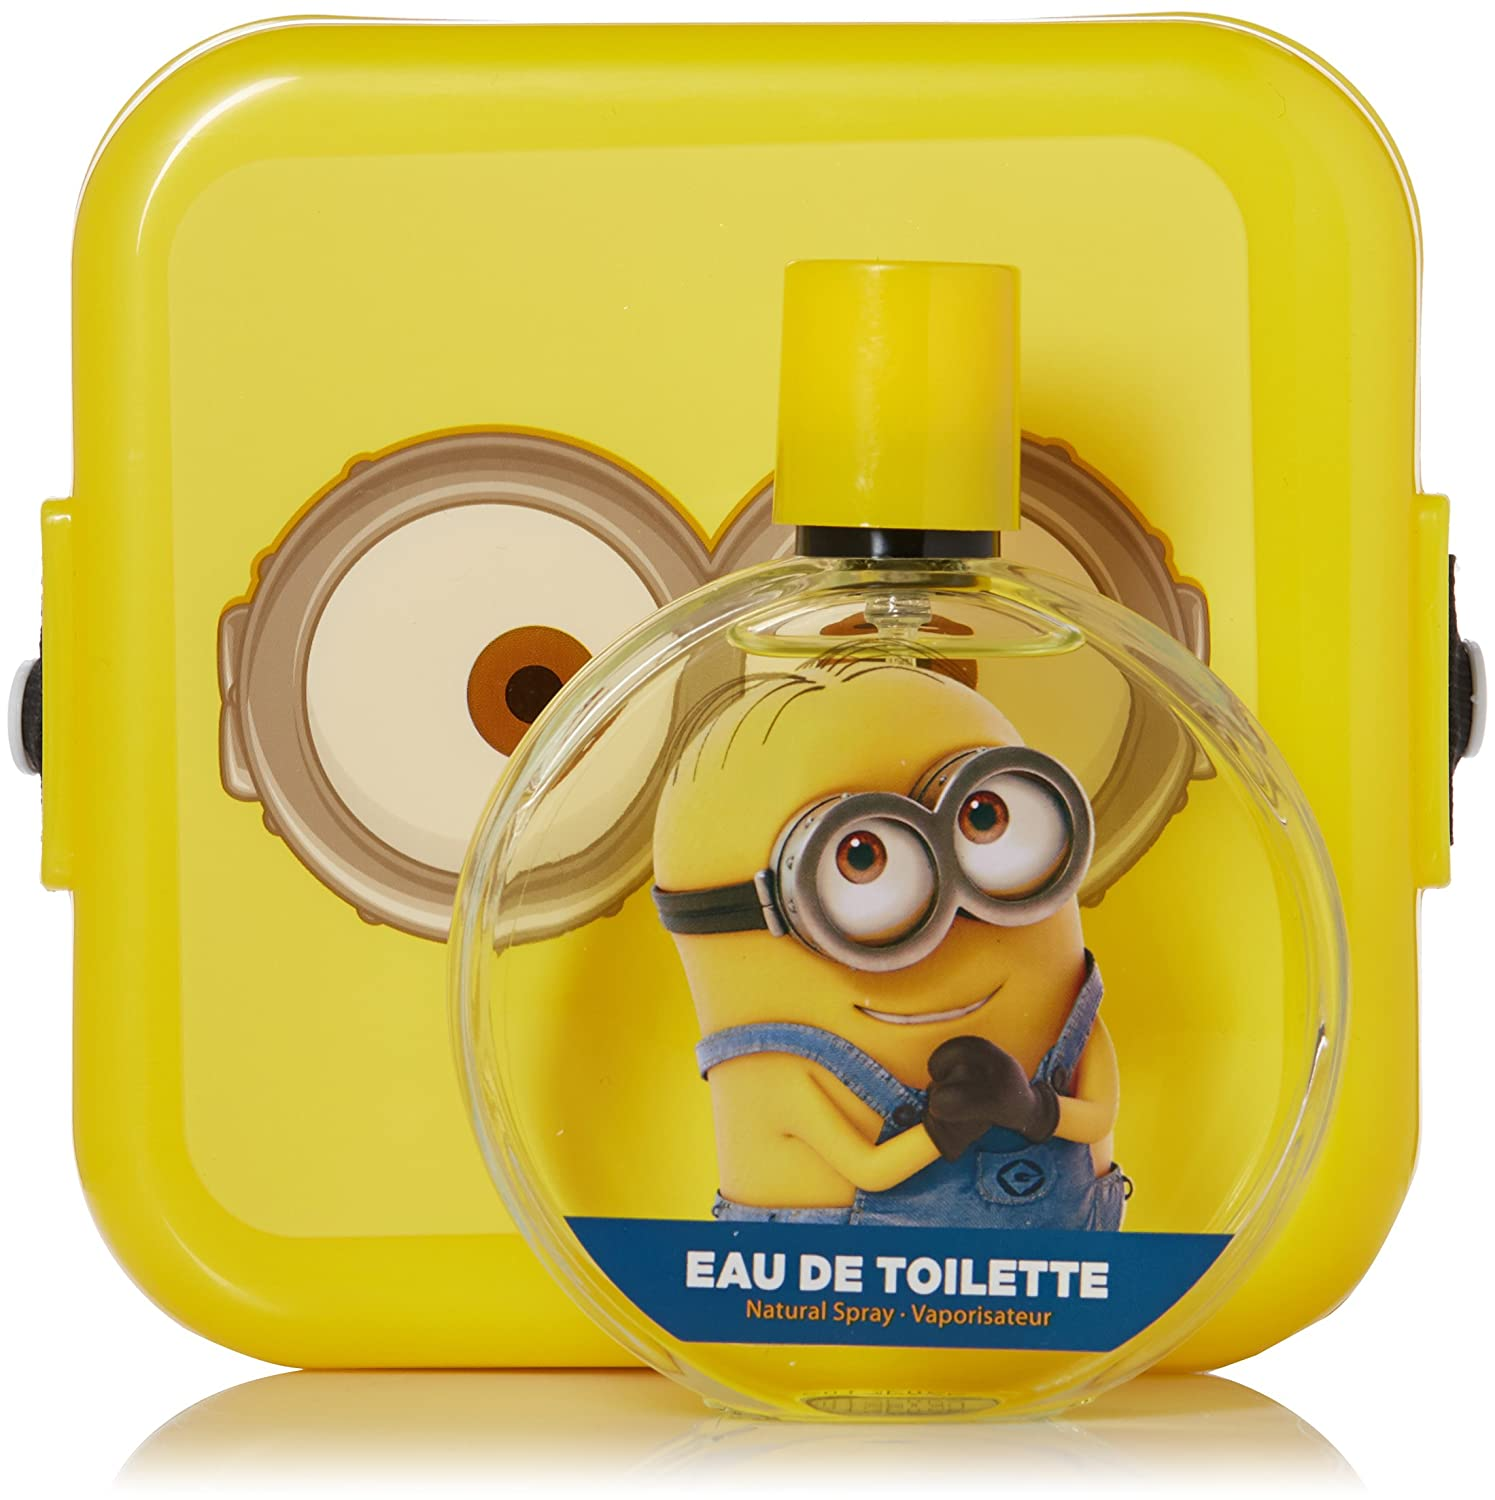 Minions 2 Piece Gift Set with Edt Spray and Minion Box for Kids I0017892